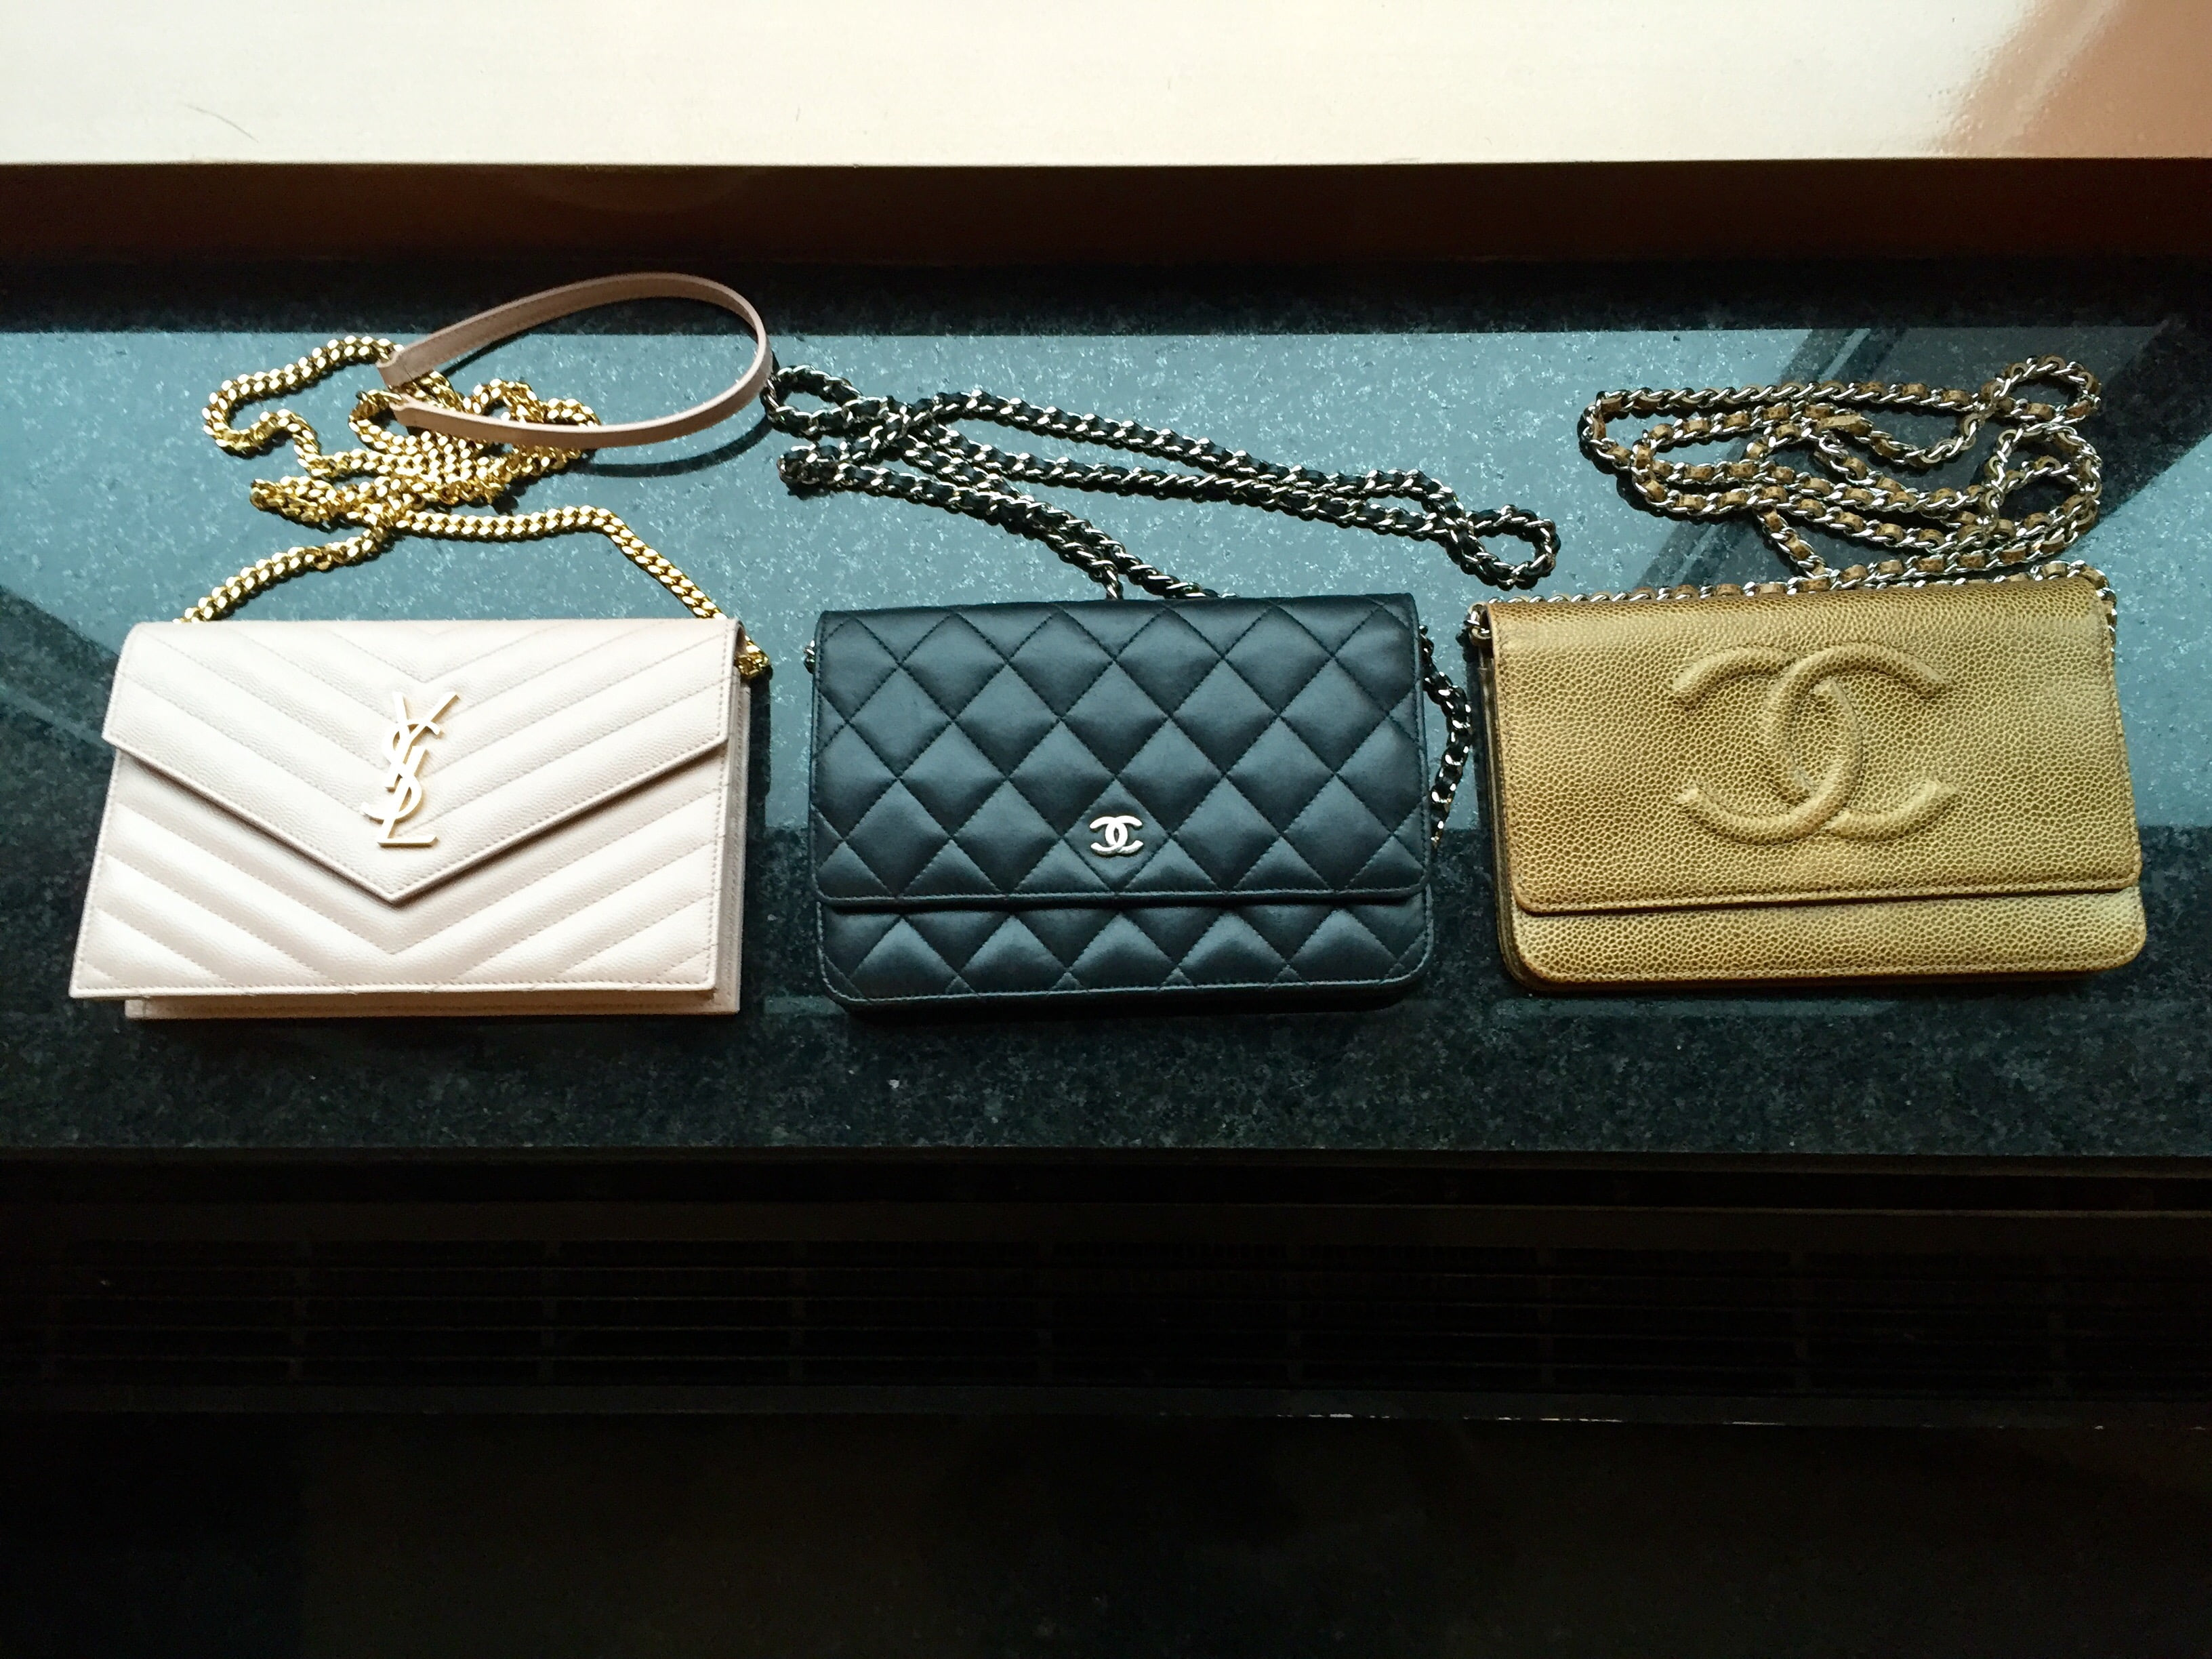 b432a48948c1 The Wallet on Chain (or simply WOC) is one of the most loved accessories in  the handbag world because it is so incredibly useful and versatile. Chanel  and ...